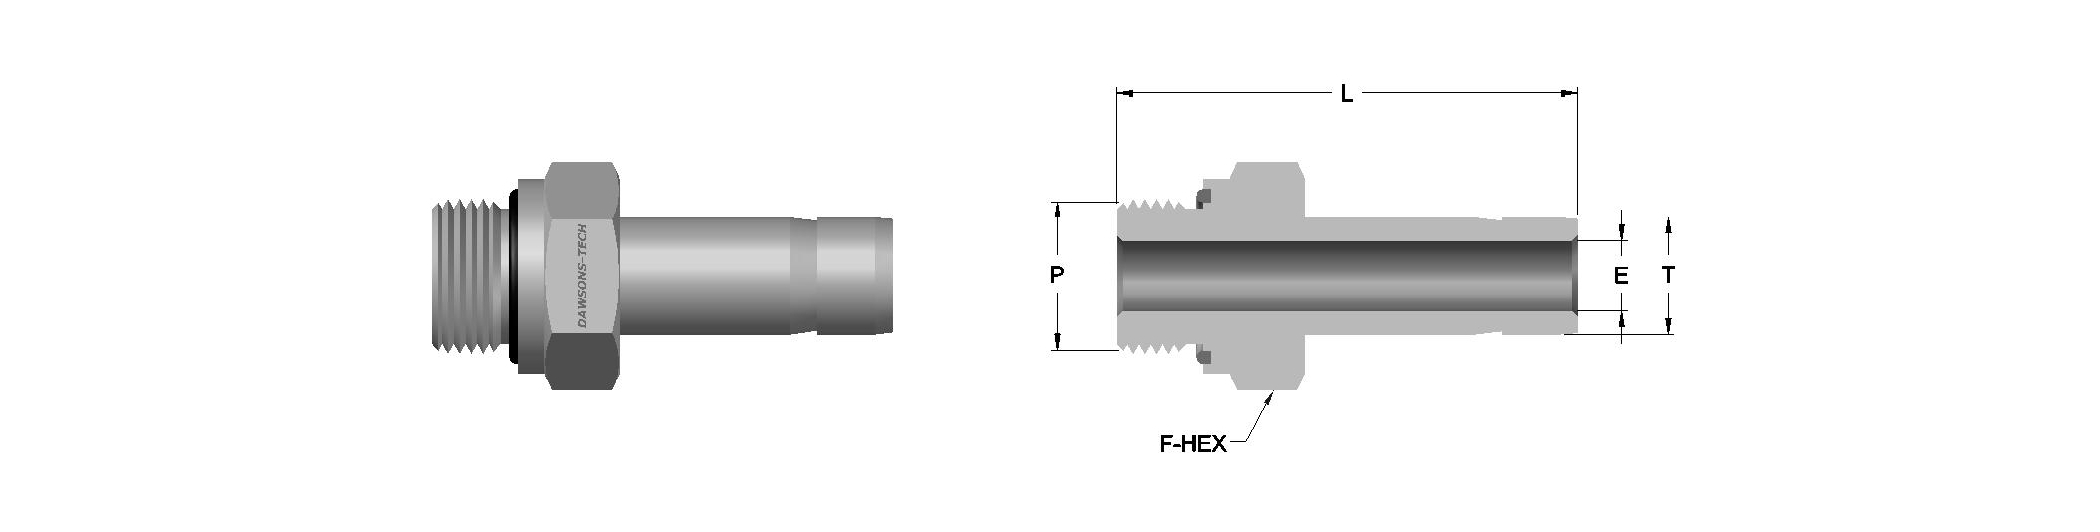 04 Male Adapter (BSP) (According to DIN 3852 Part 2 Form E)